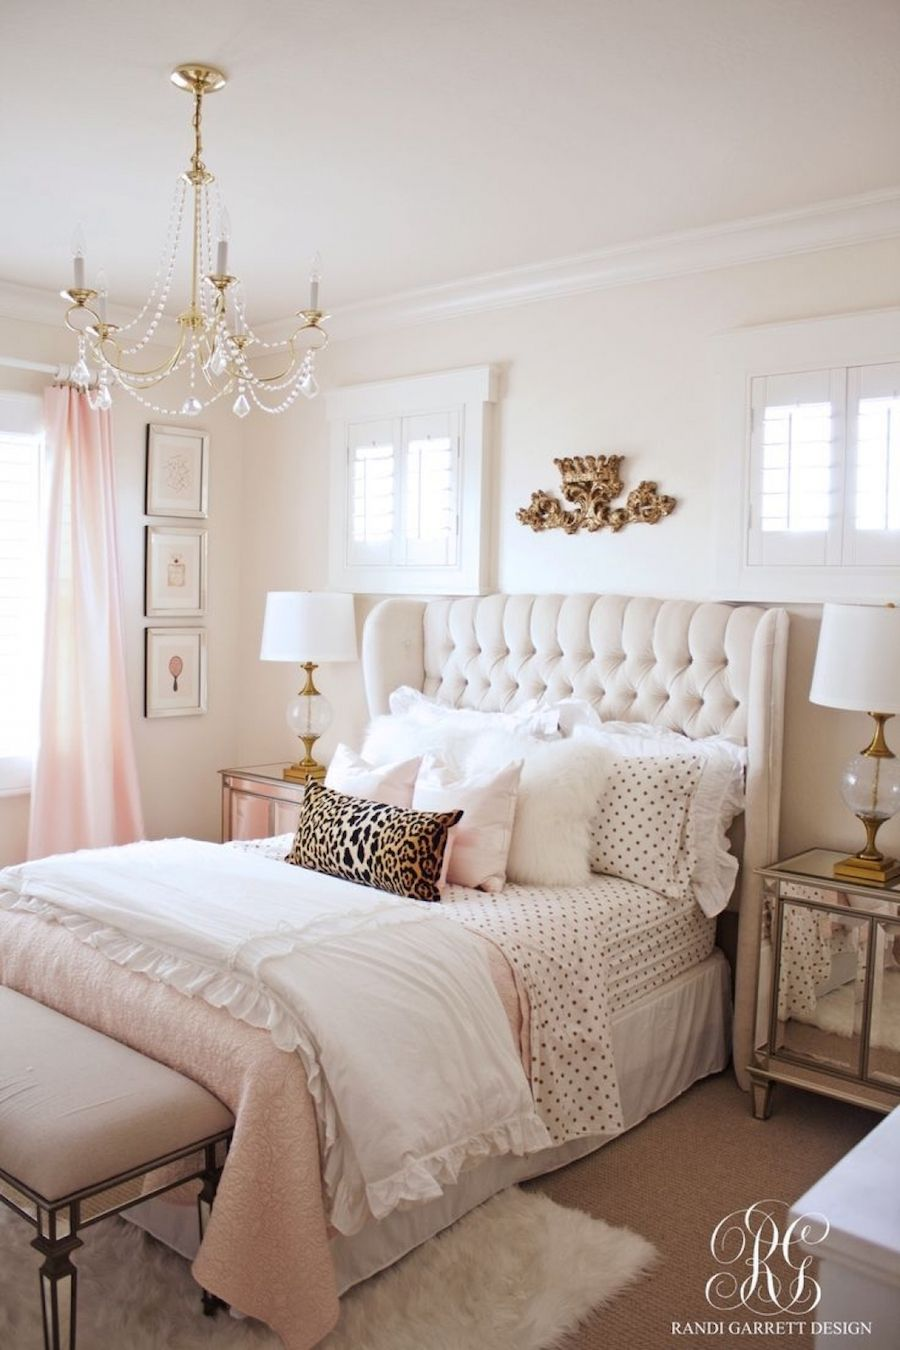 12 Dreamy Decor Ideas For The Bedroom (With Images